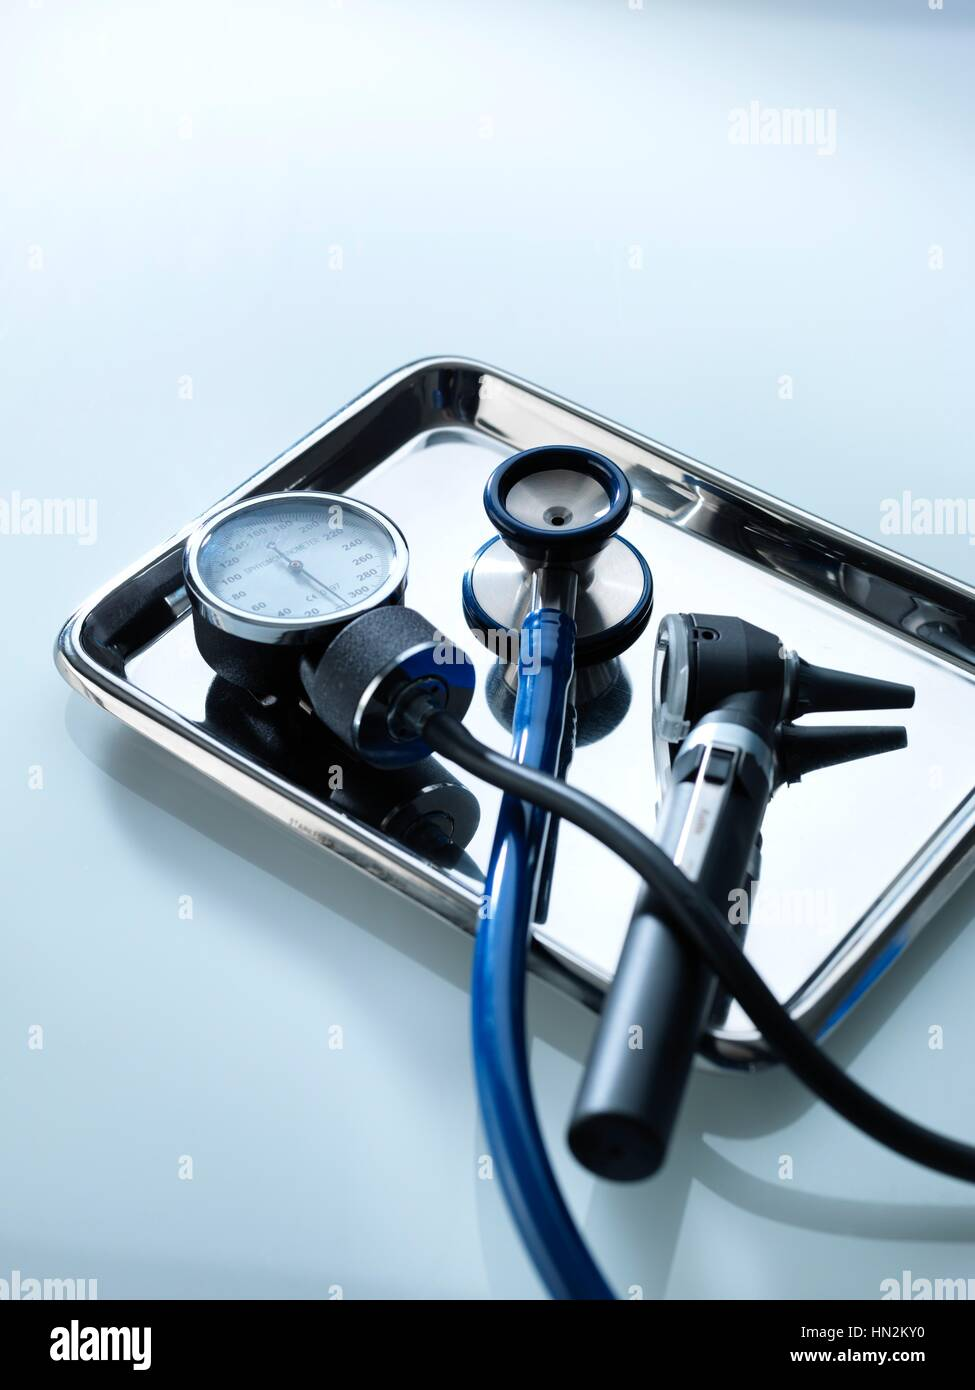 Sphygmomanometer, stethoscope and otoscope on a metal tray. - Stock Image